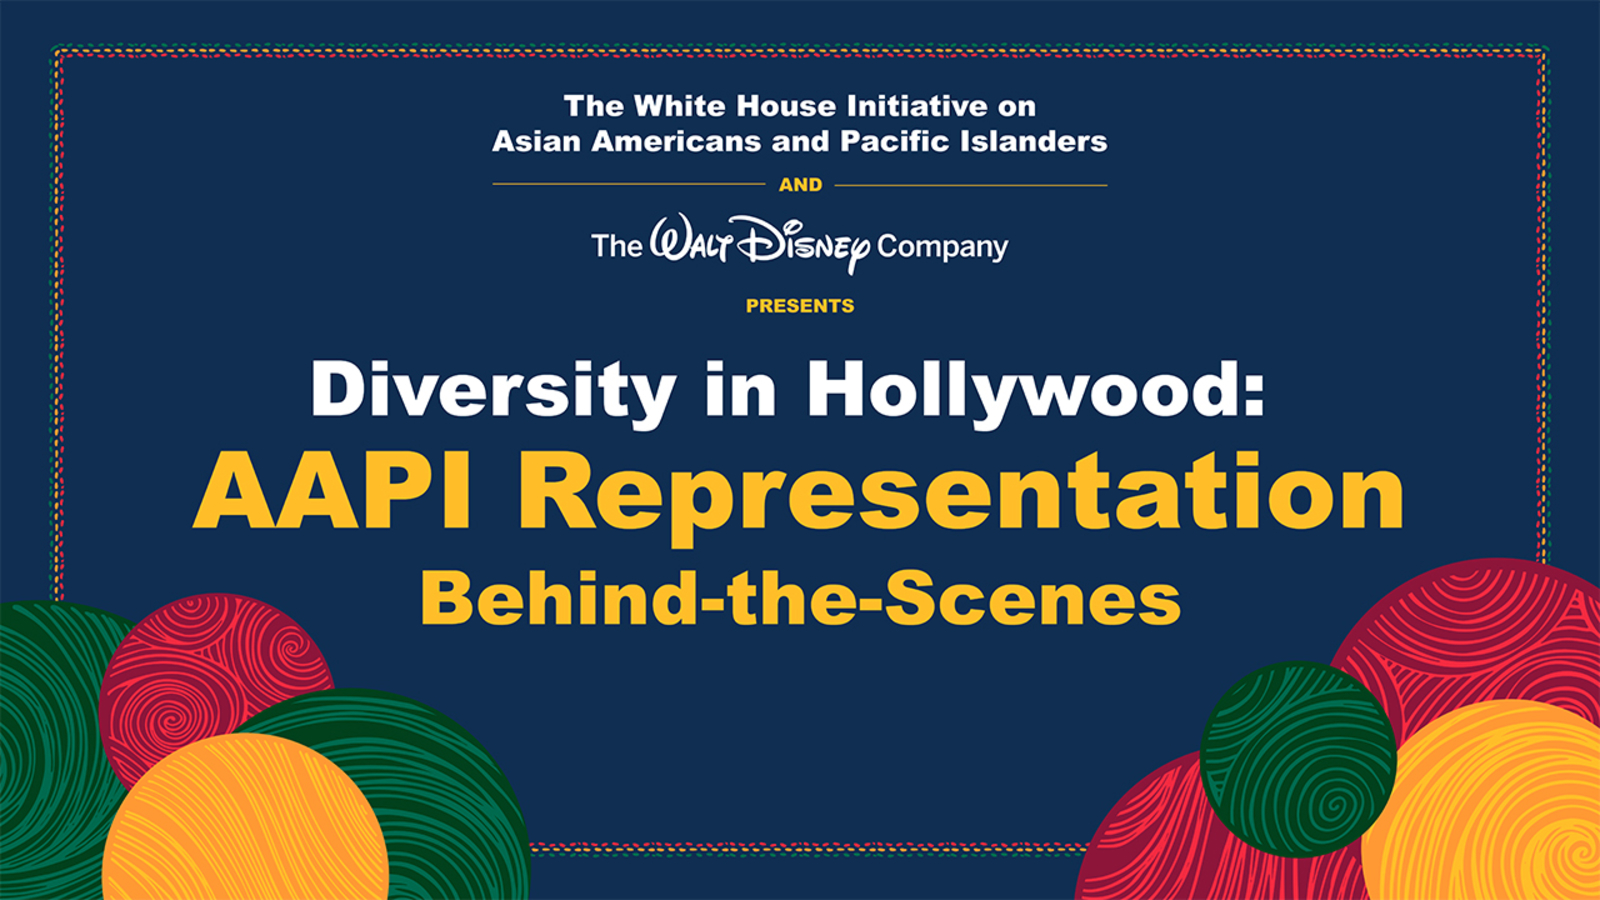 Disney, White House to co-host panel discussion on Asian American representation in Hollywood